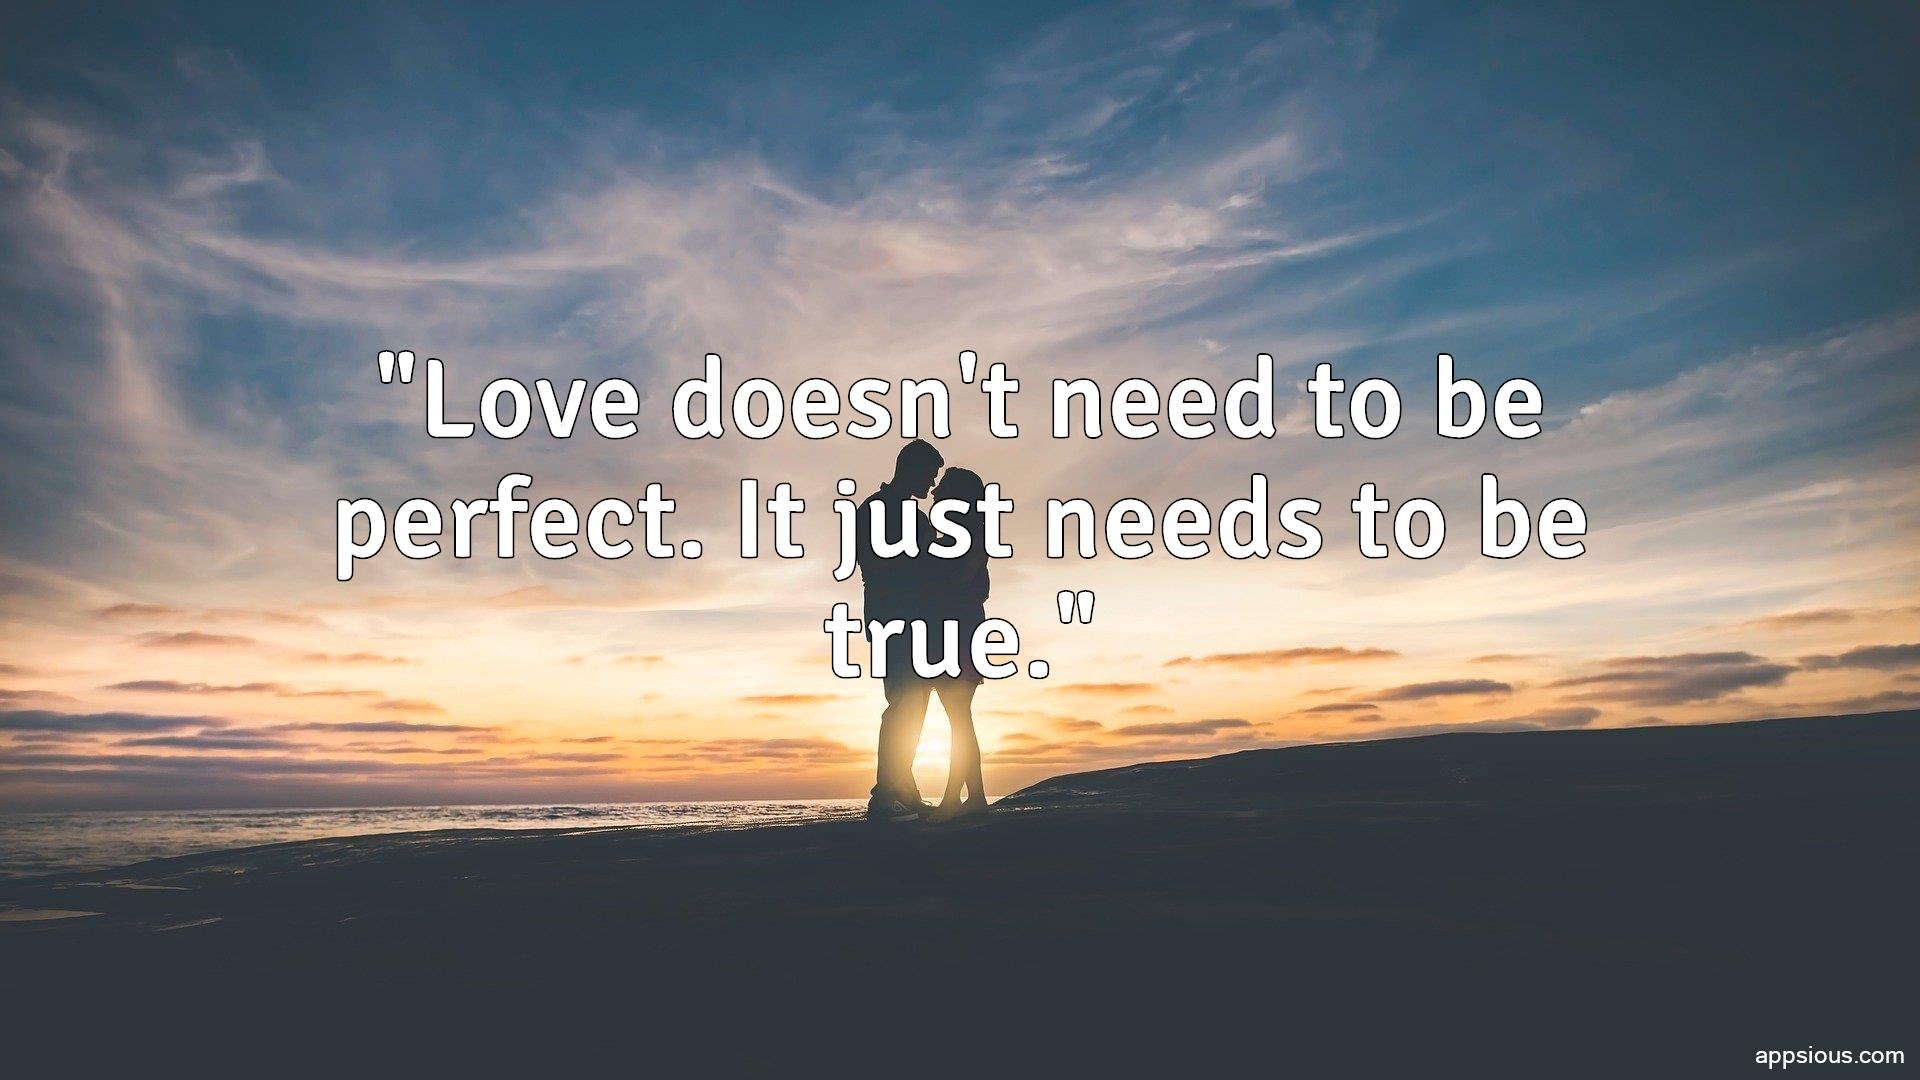 Love doesn't need to be perfect. It just needs to be true.